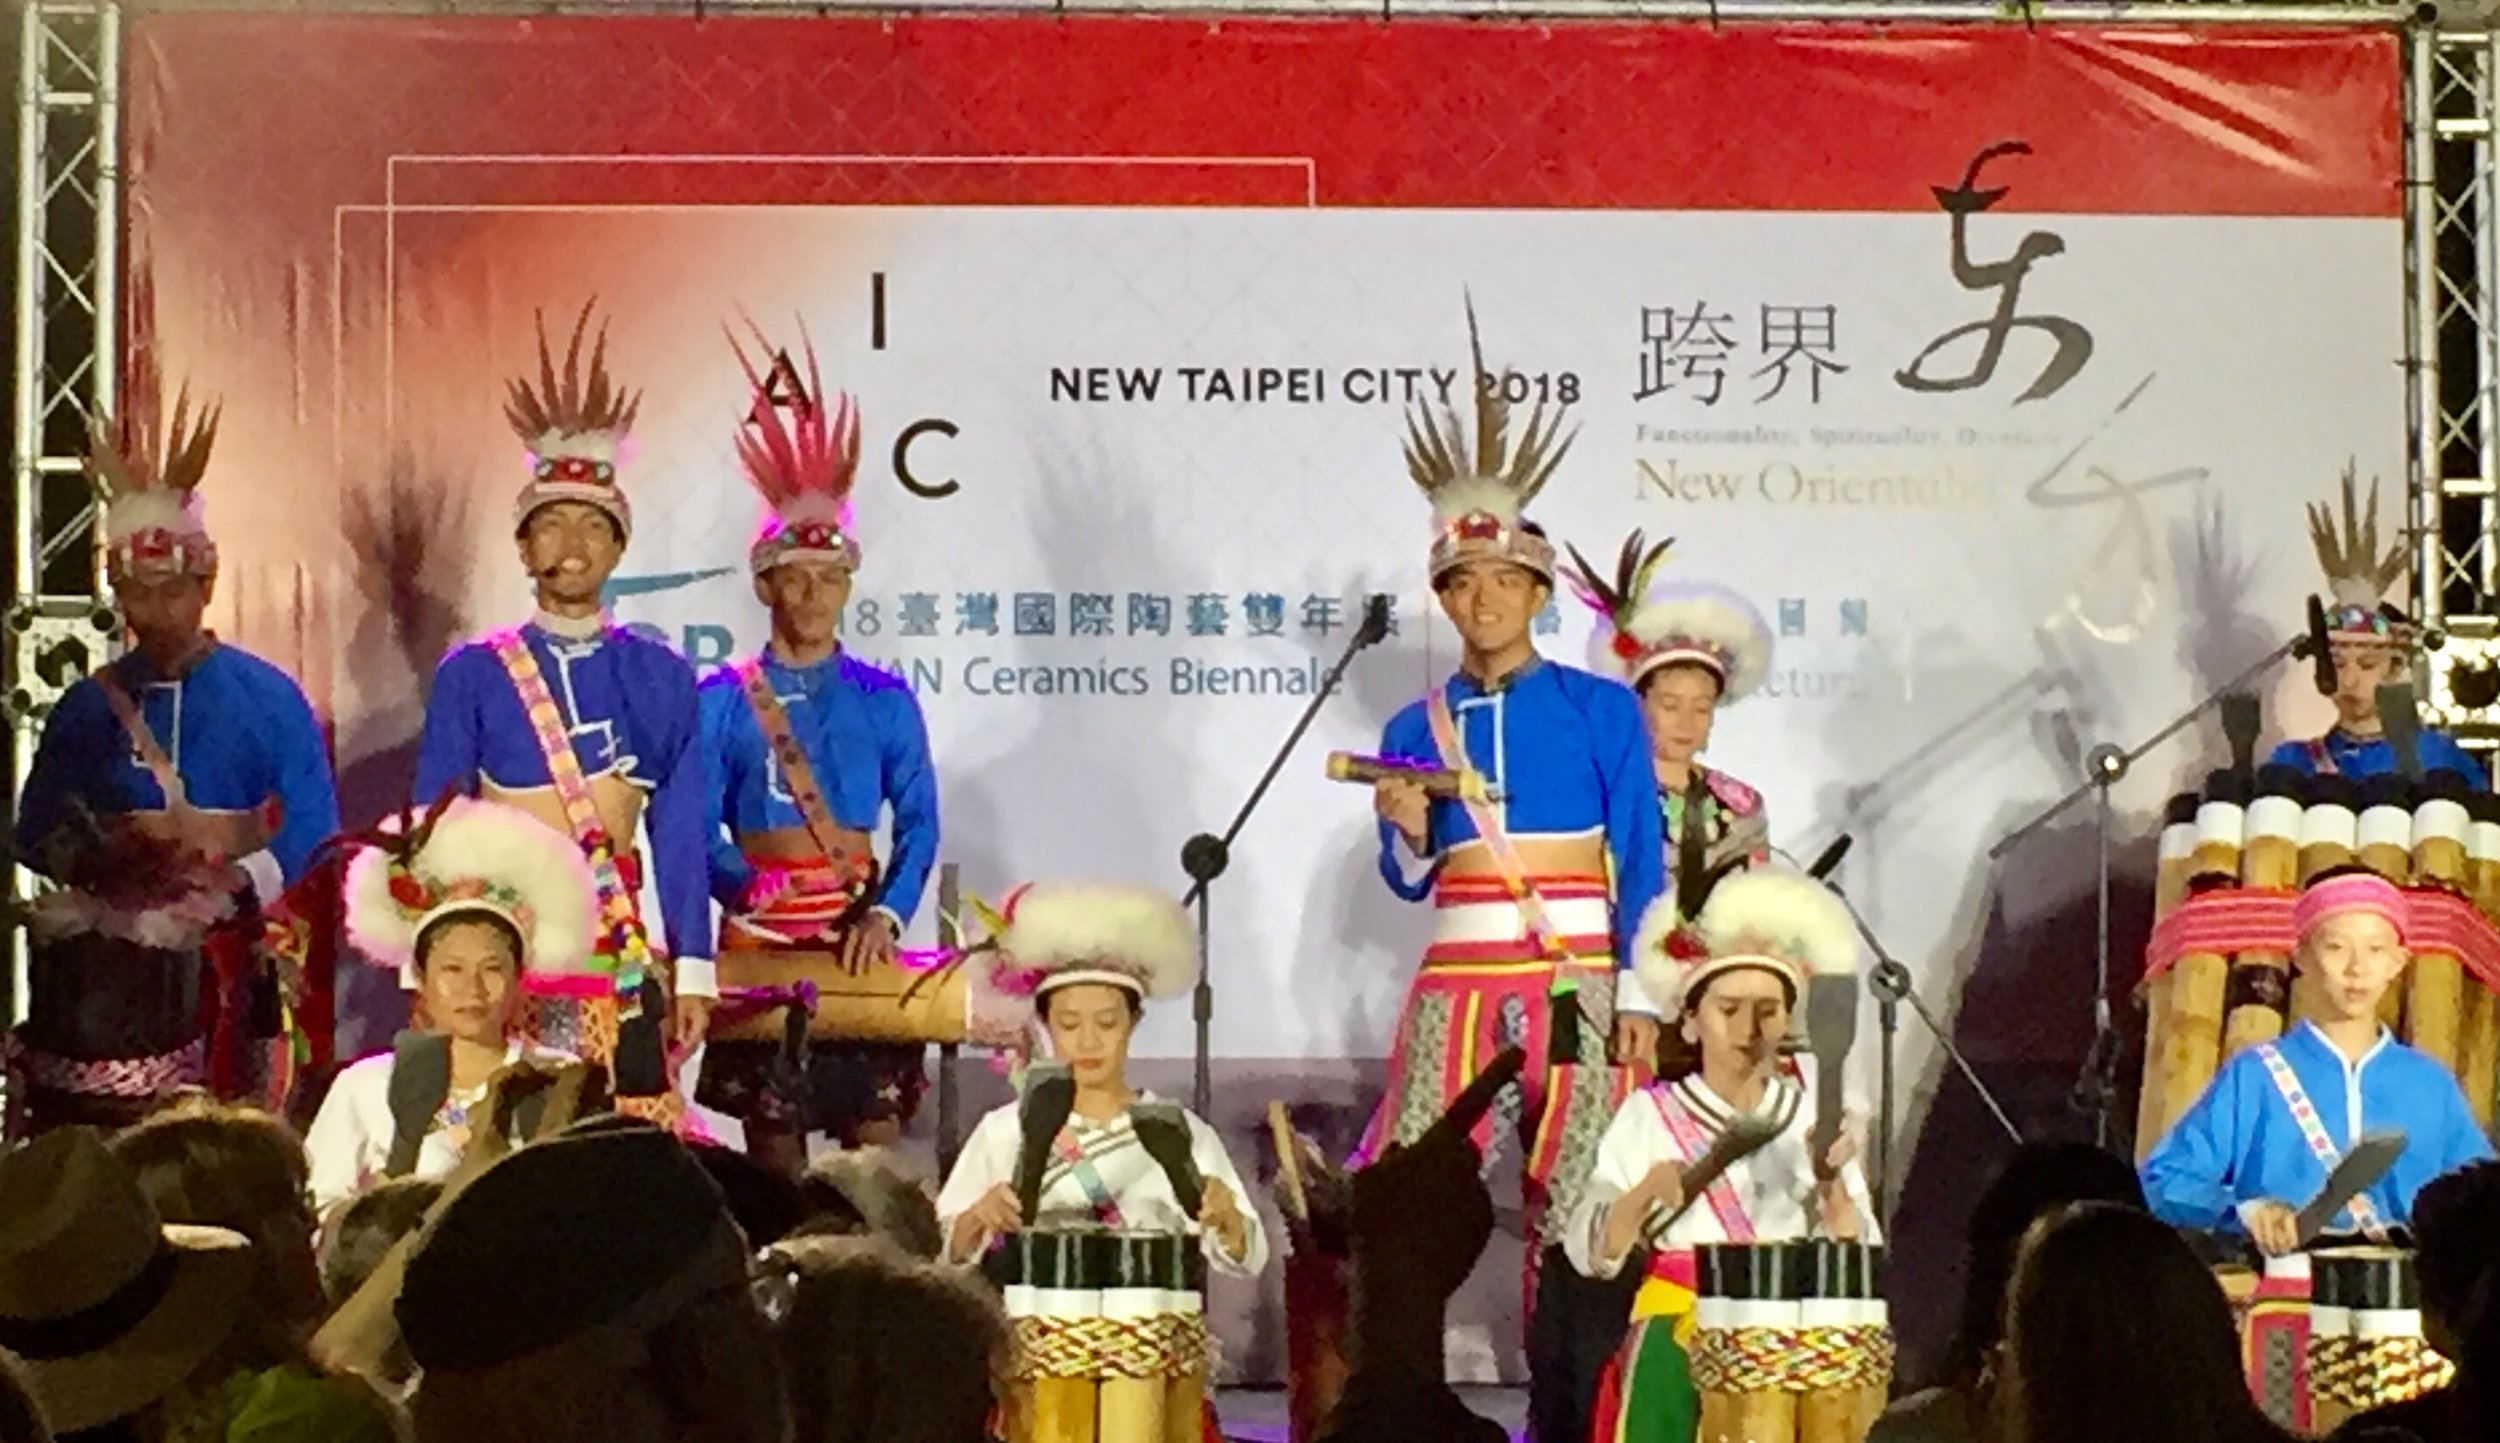 Opening ceremonie in the evening of the IAC Conference.